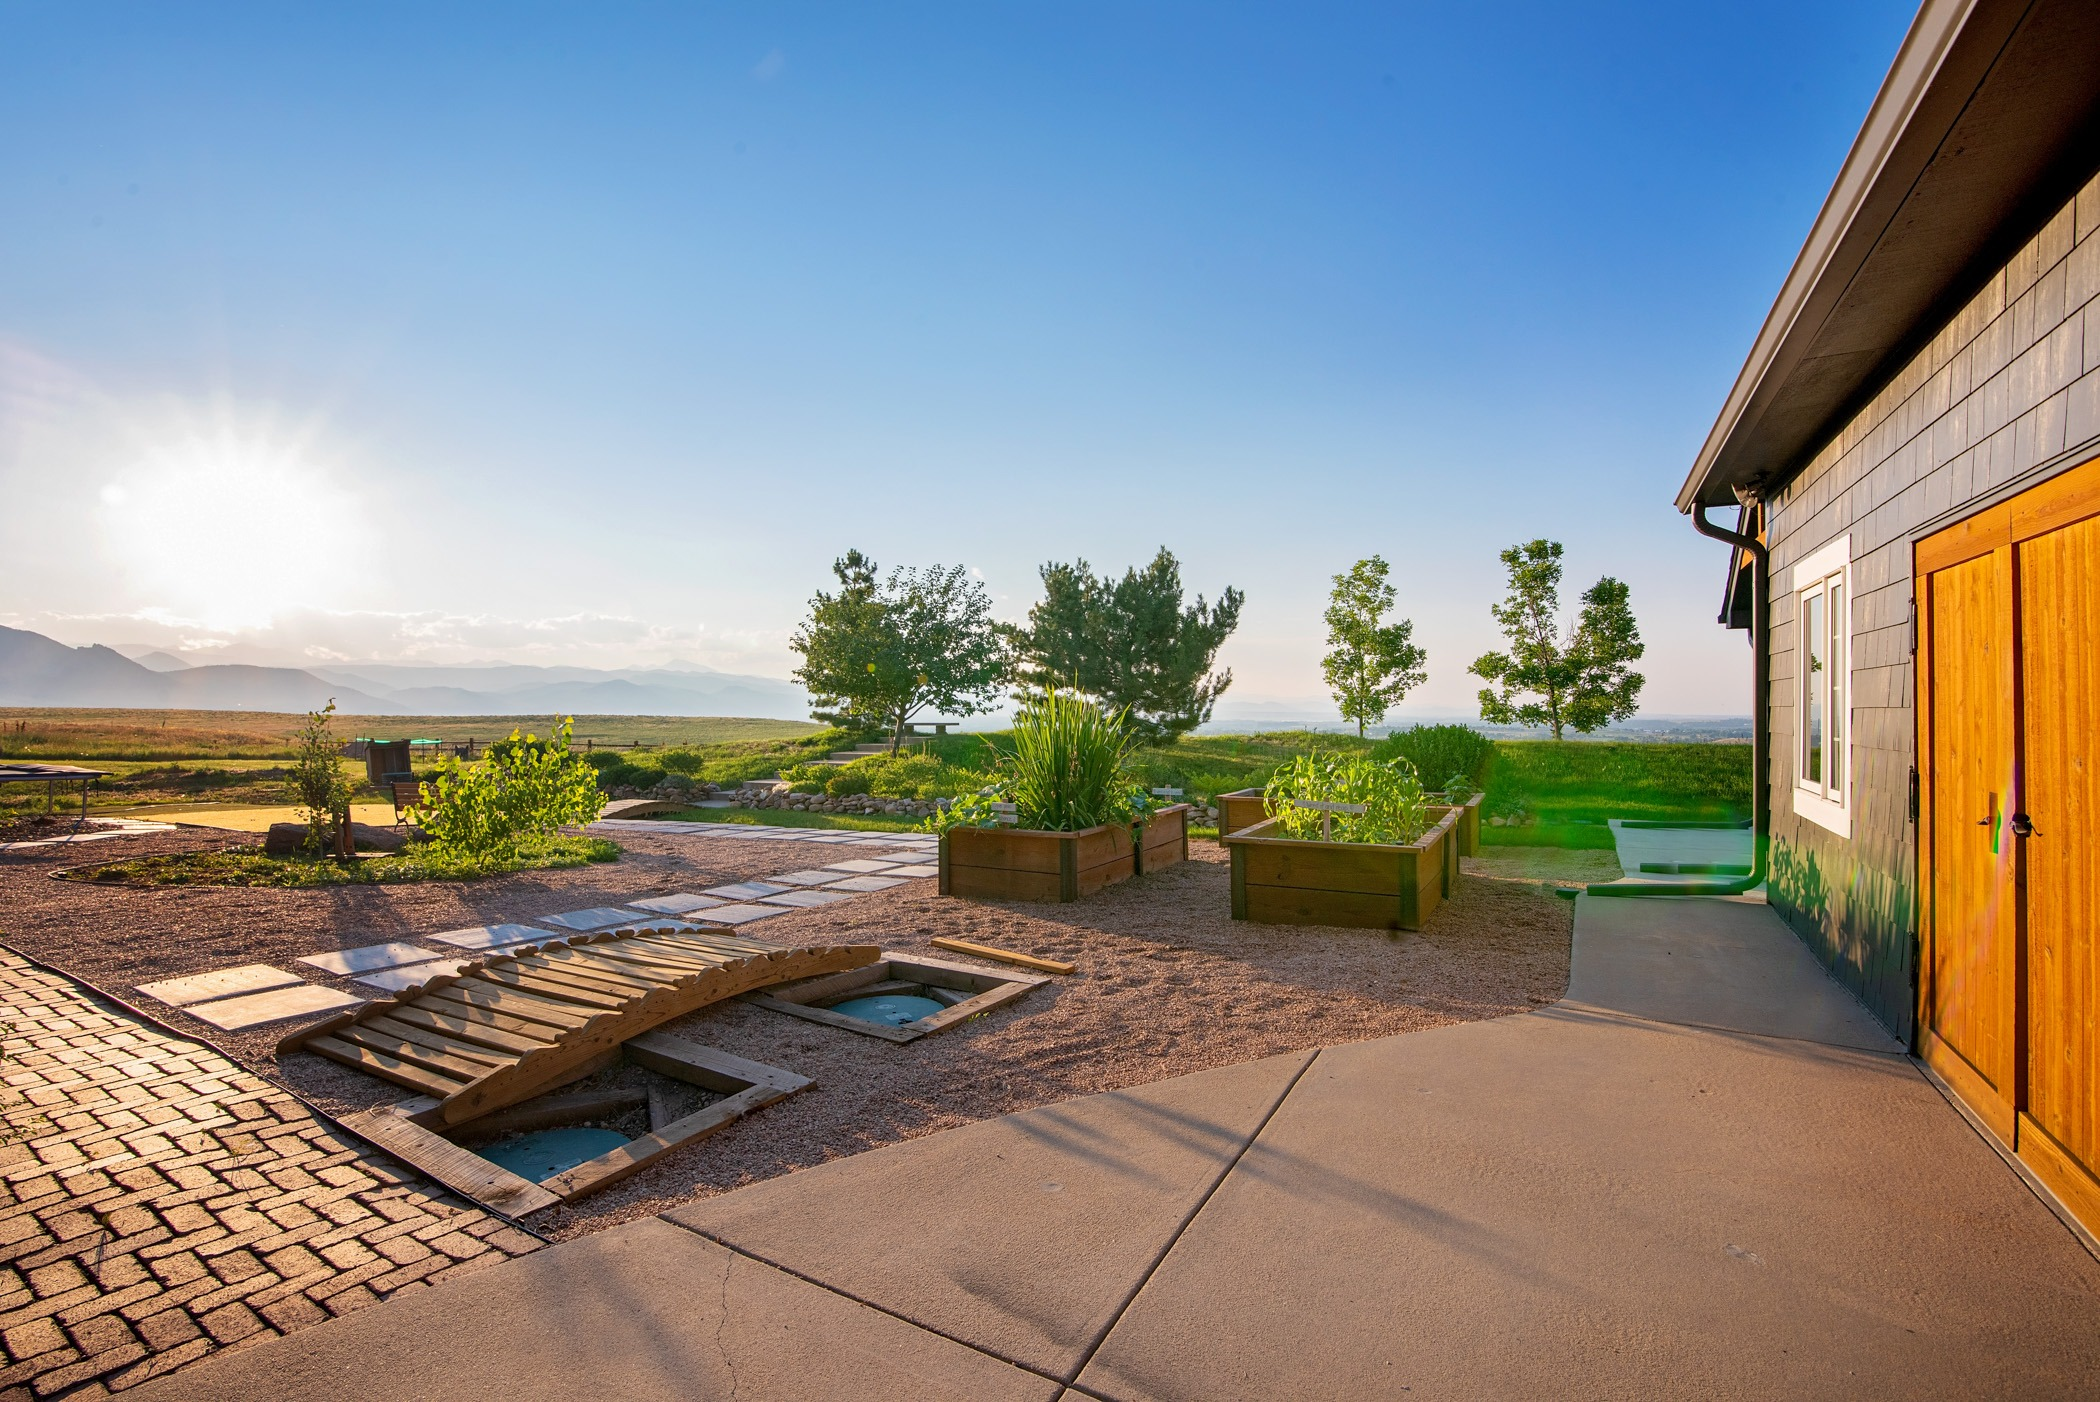 Sunny backyard with many spaces